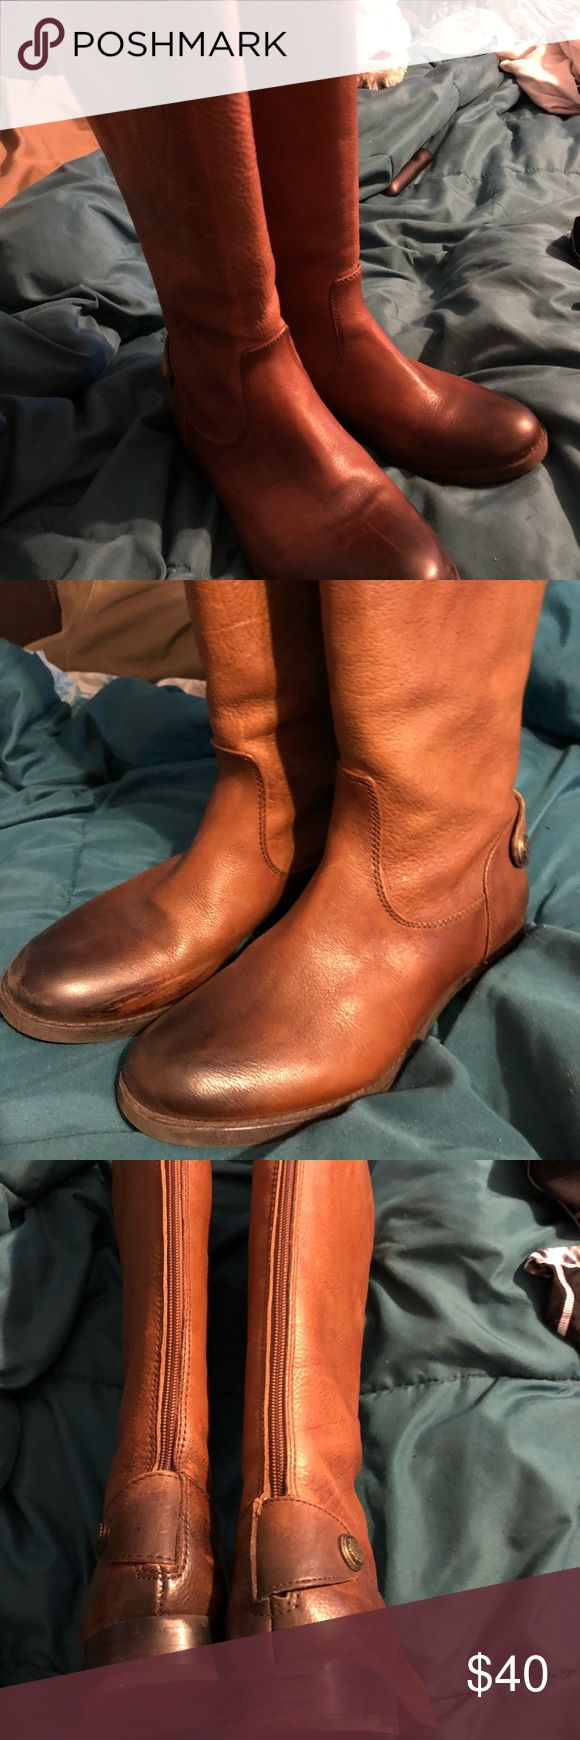 Leather boots by Arturo Chang like new Brown size 8.5 med wide calf bought new at Dillard's Worn very few times. Too hot where I live to wear. They are comfortable and a pretty leather. Riding boot style. Arturo Chiang Shoes